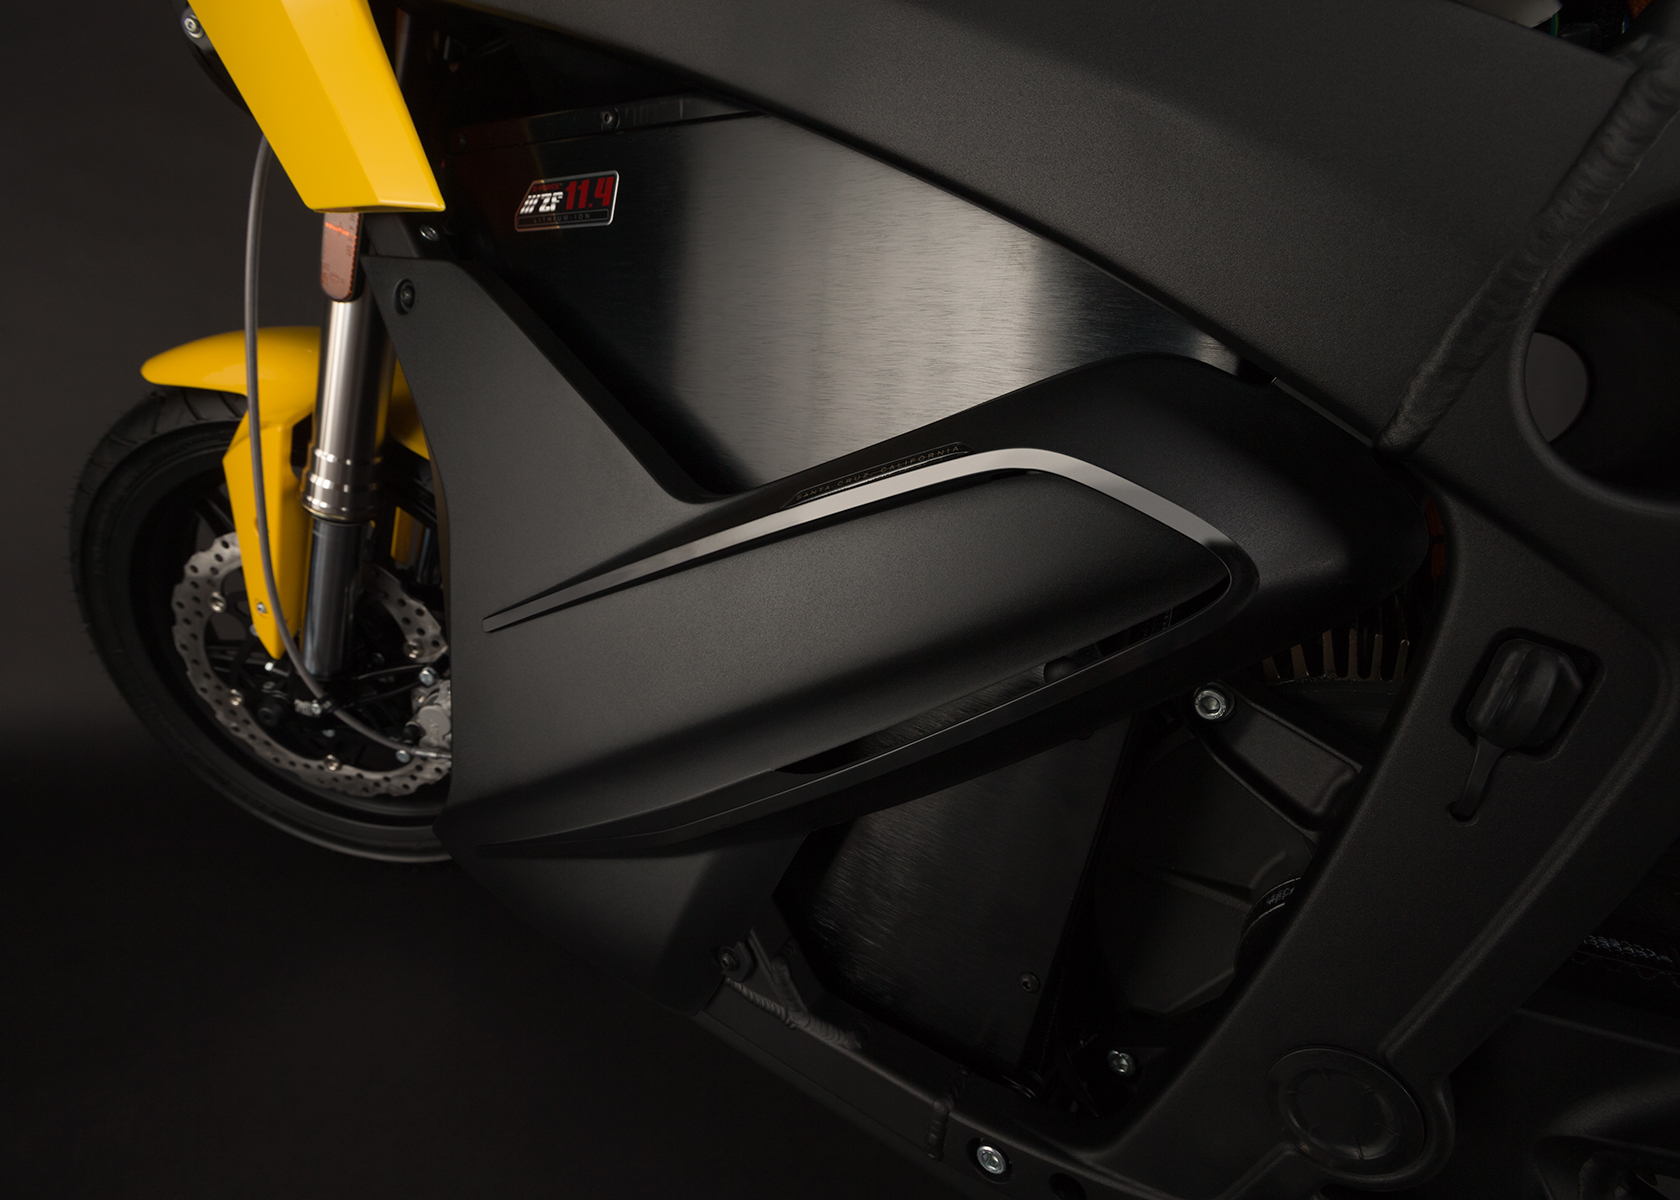 '.2014 Zero S Electric Motorcycle: Chin Fairing.'